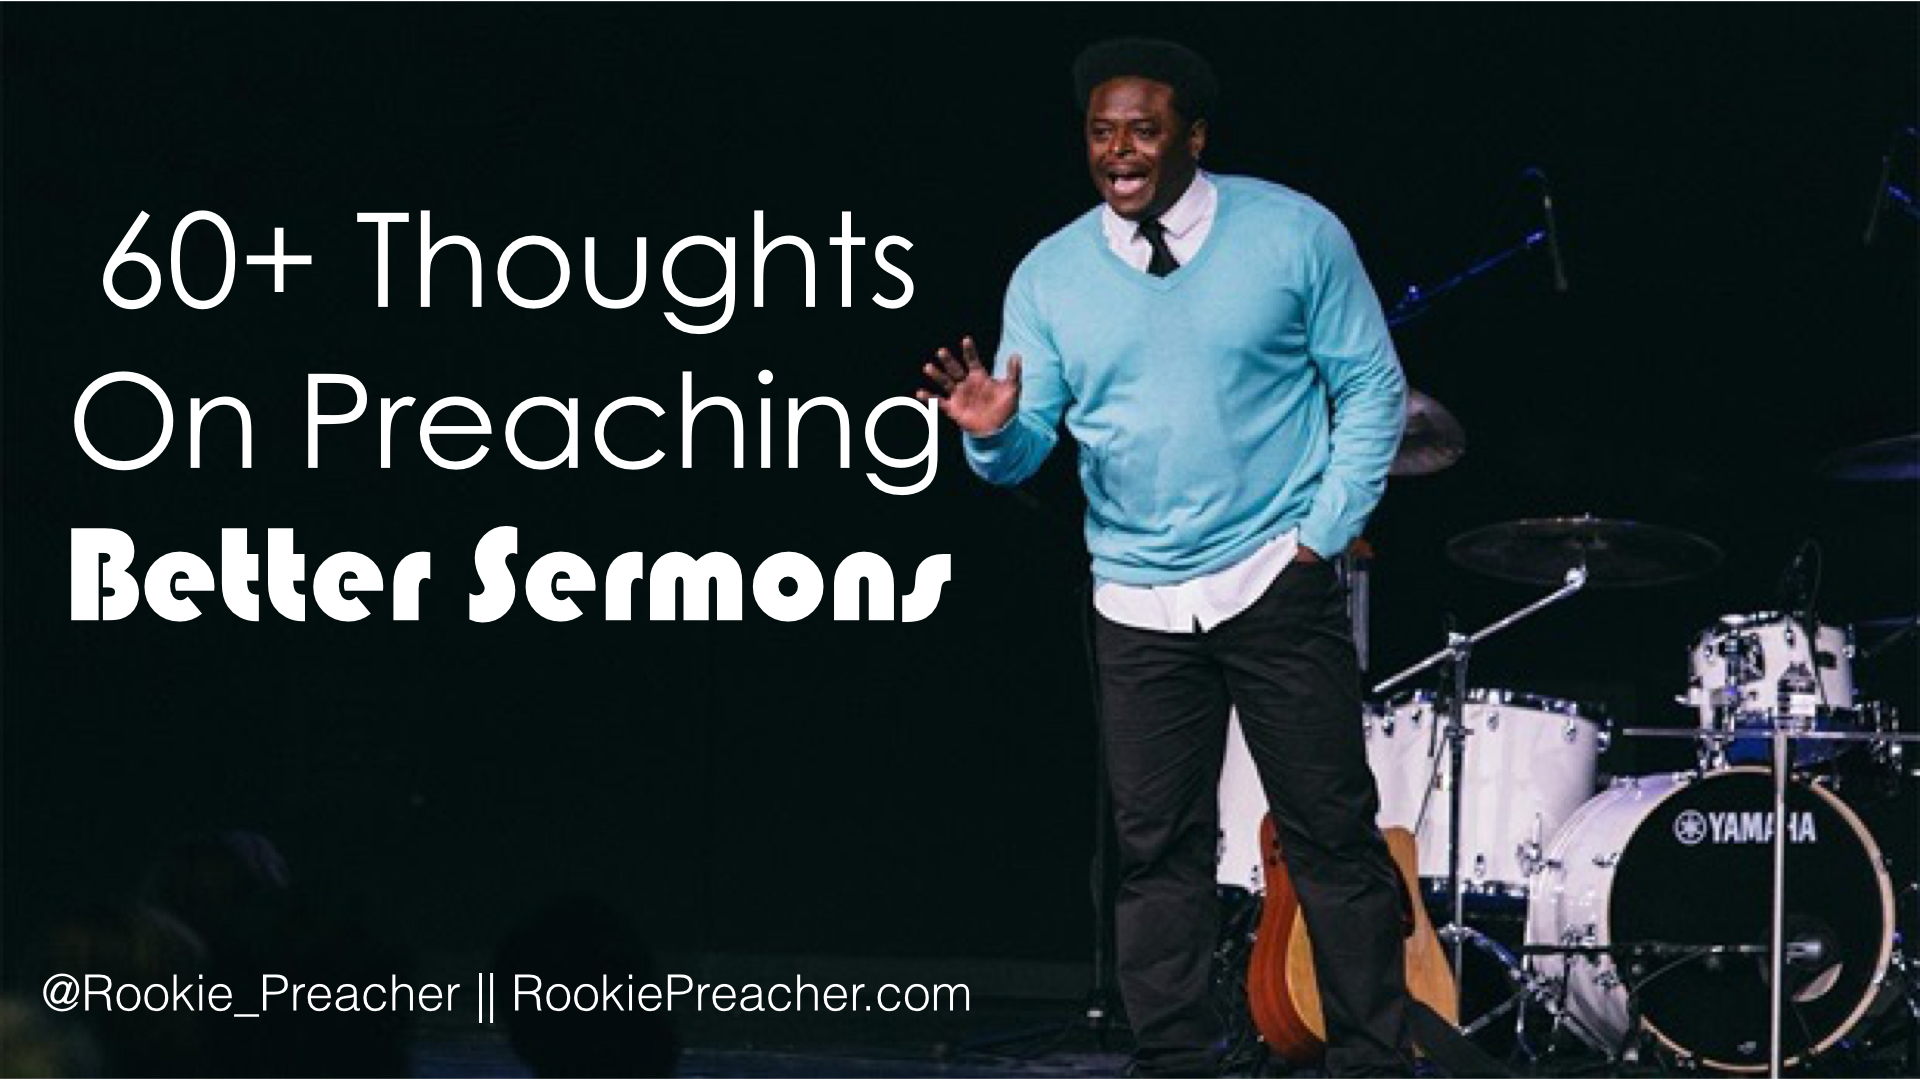 60+ Thoughts on Preaching Better Sermons